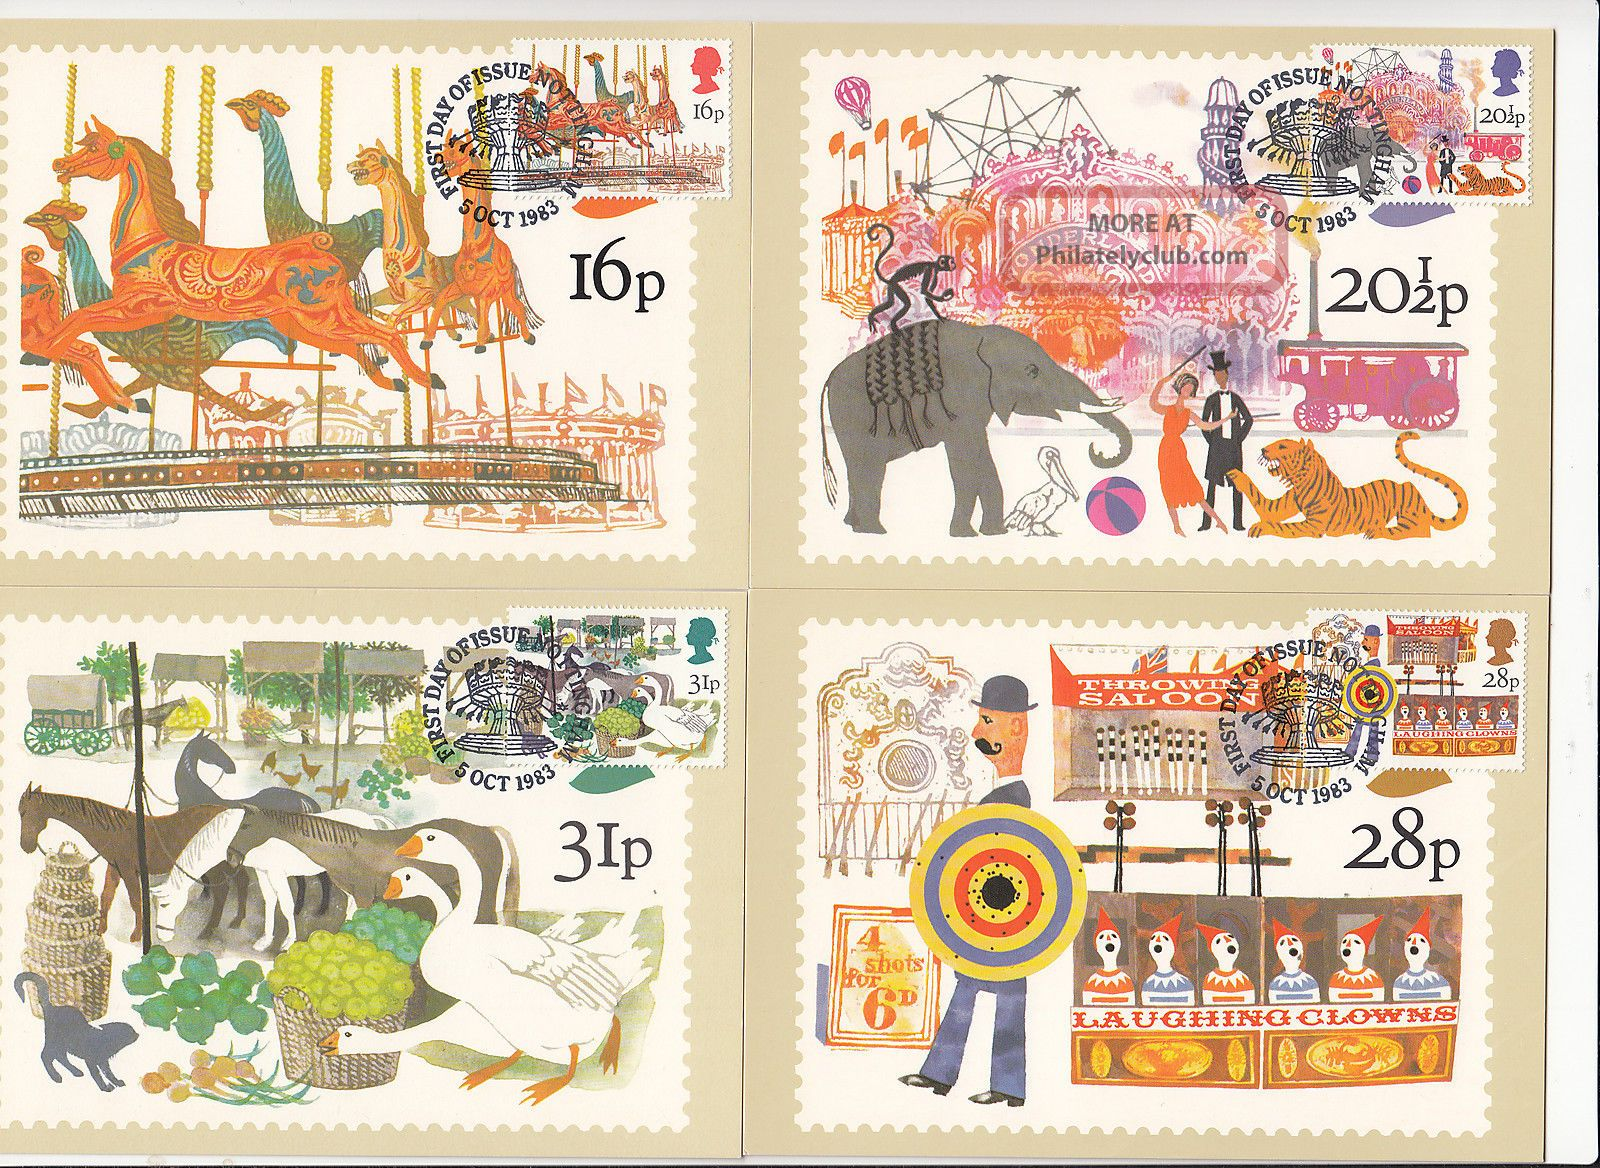 (32433) Gb Phq Fdi British Fairs Maxicard / Postcard - Nottingham 5 October 1983 1971-Now photo